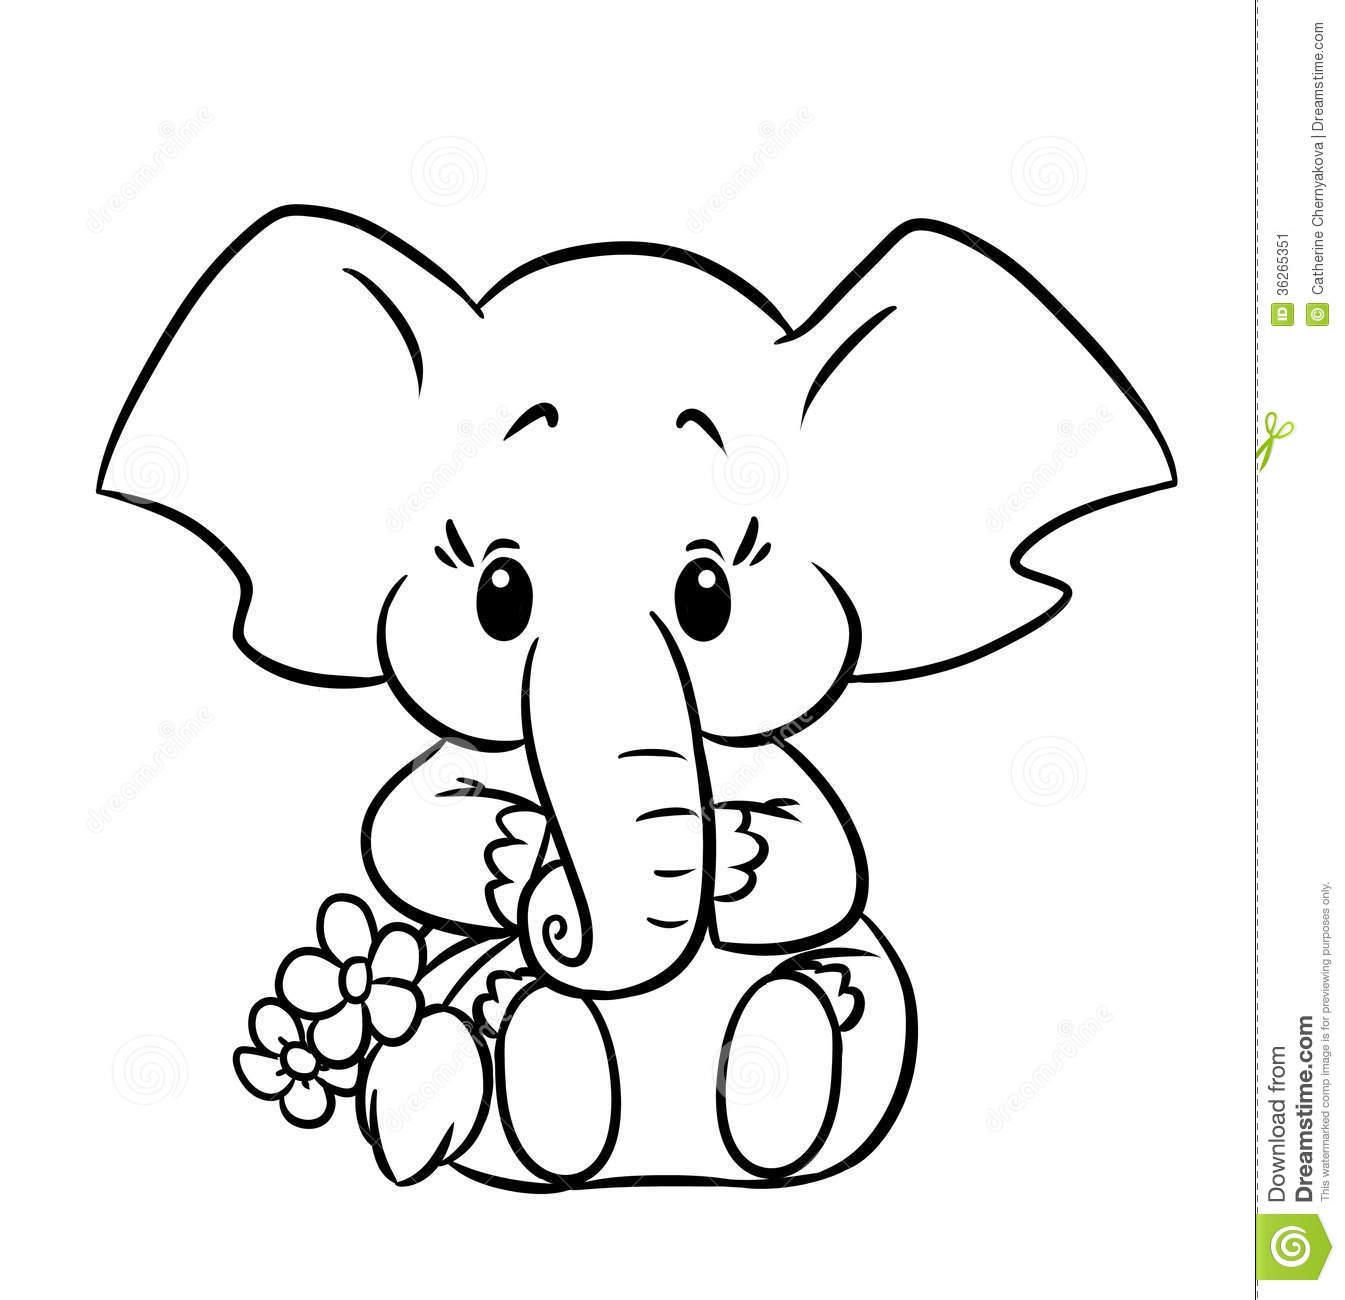 elephant coloring pictures baby elephant coloring pages to download and print for free pictures elephant coloring